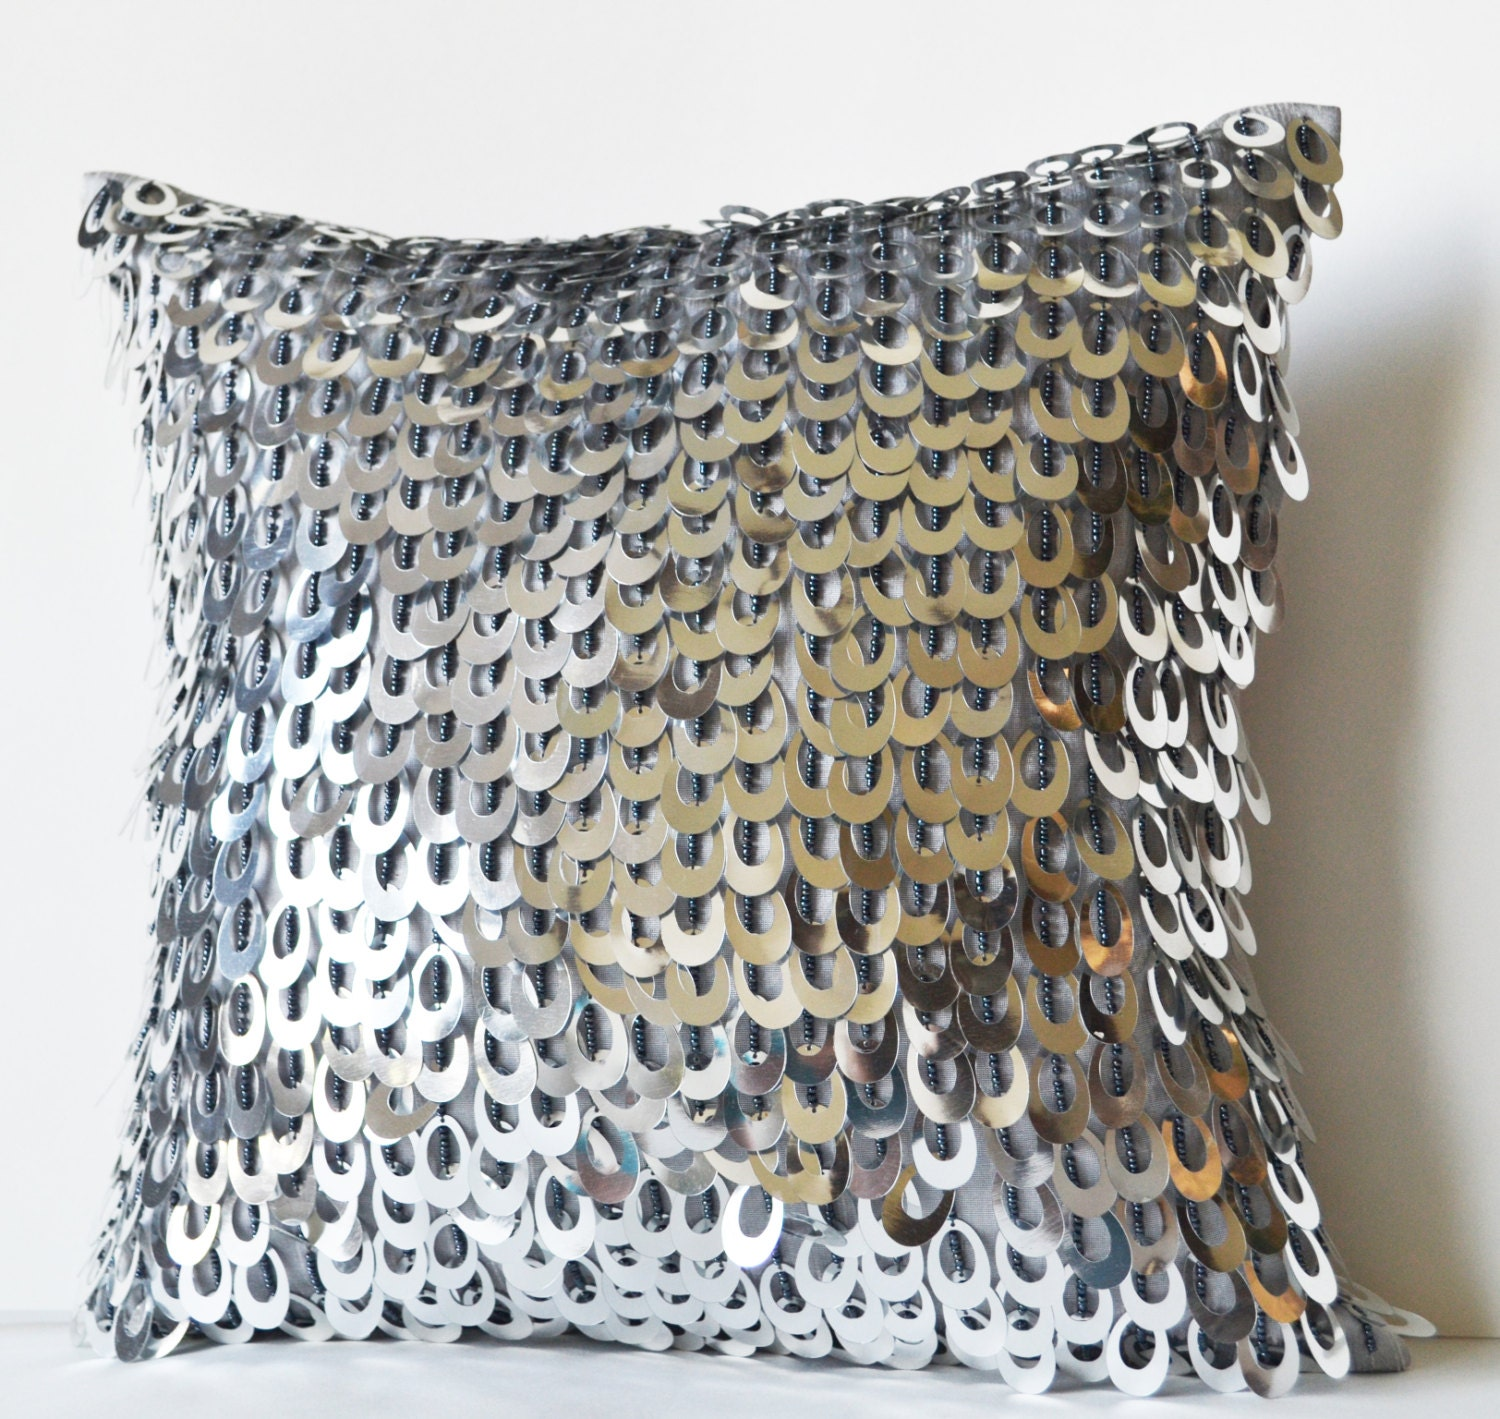 Large Silver Throw Pillow : Decorative Throw Pillow Cover with Metallic Sequins Beads